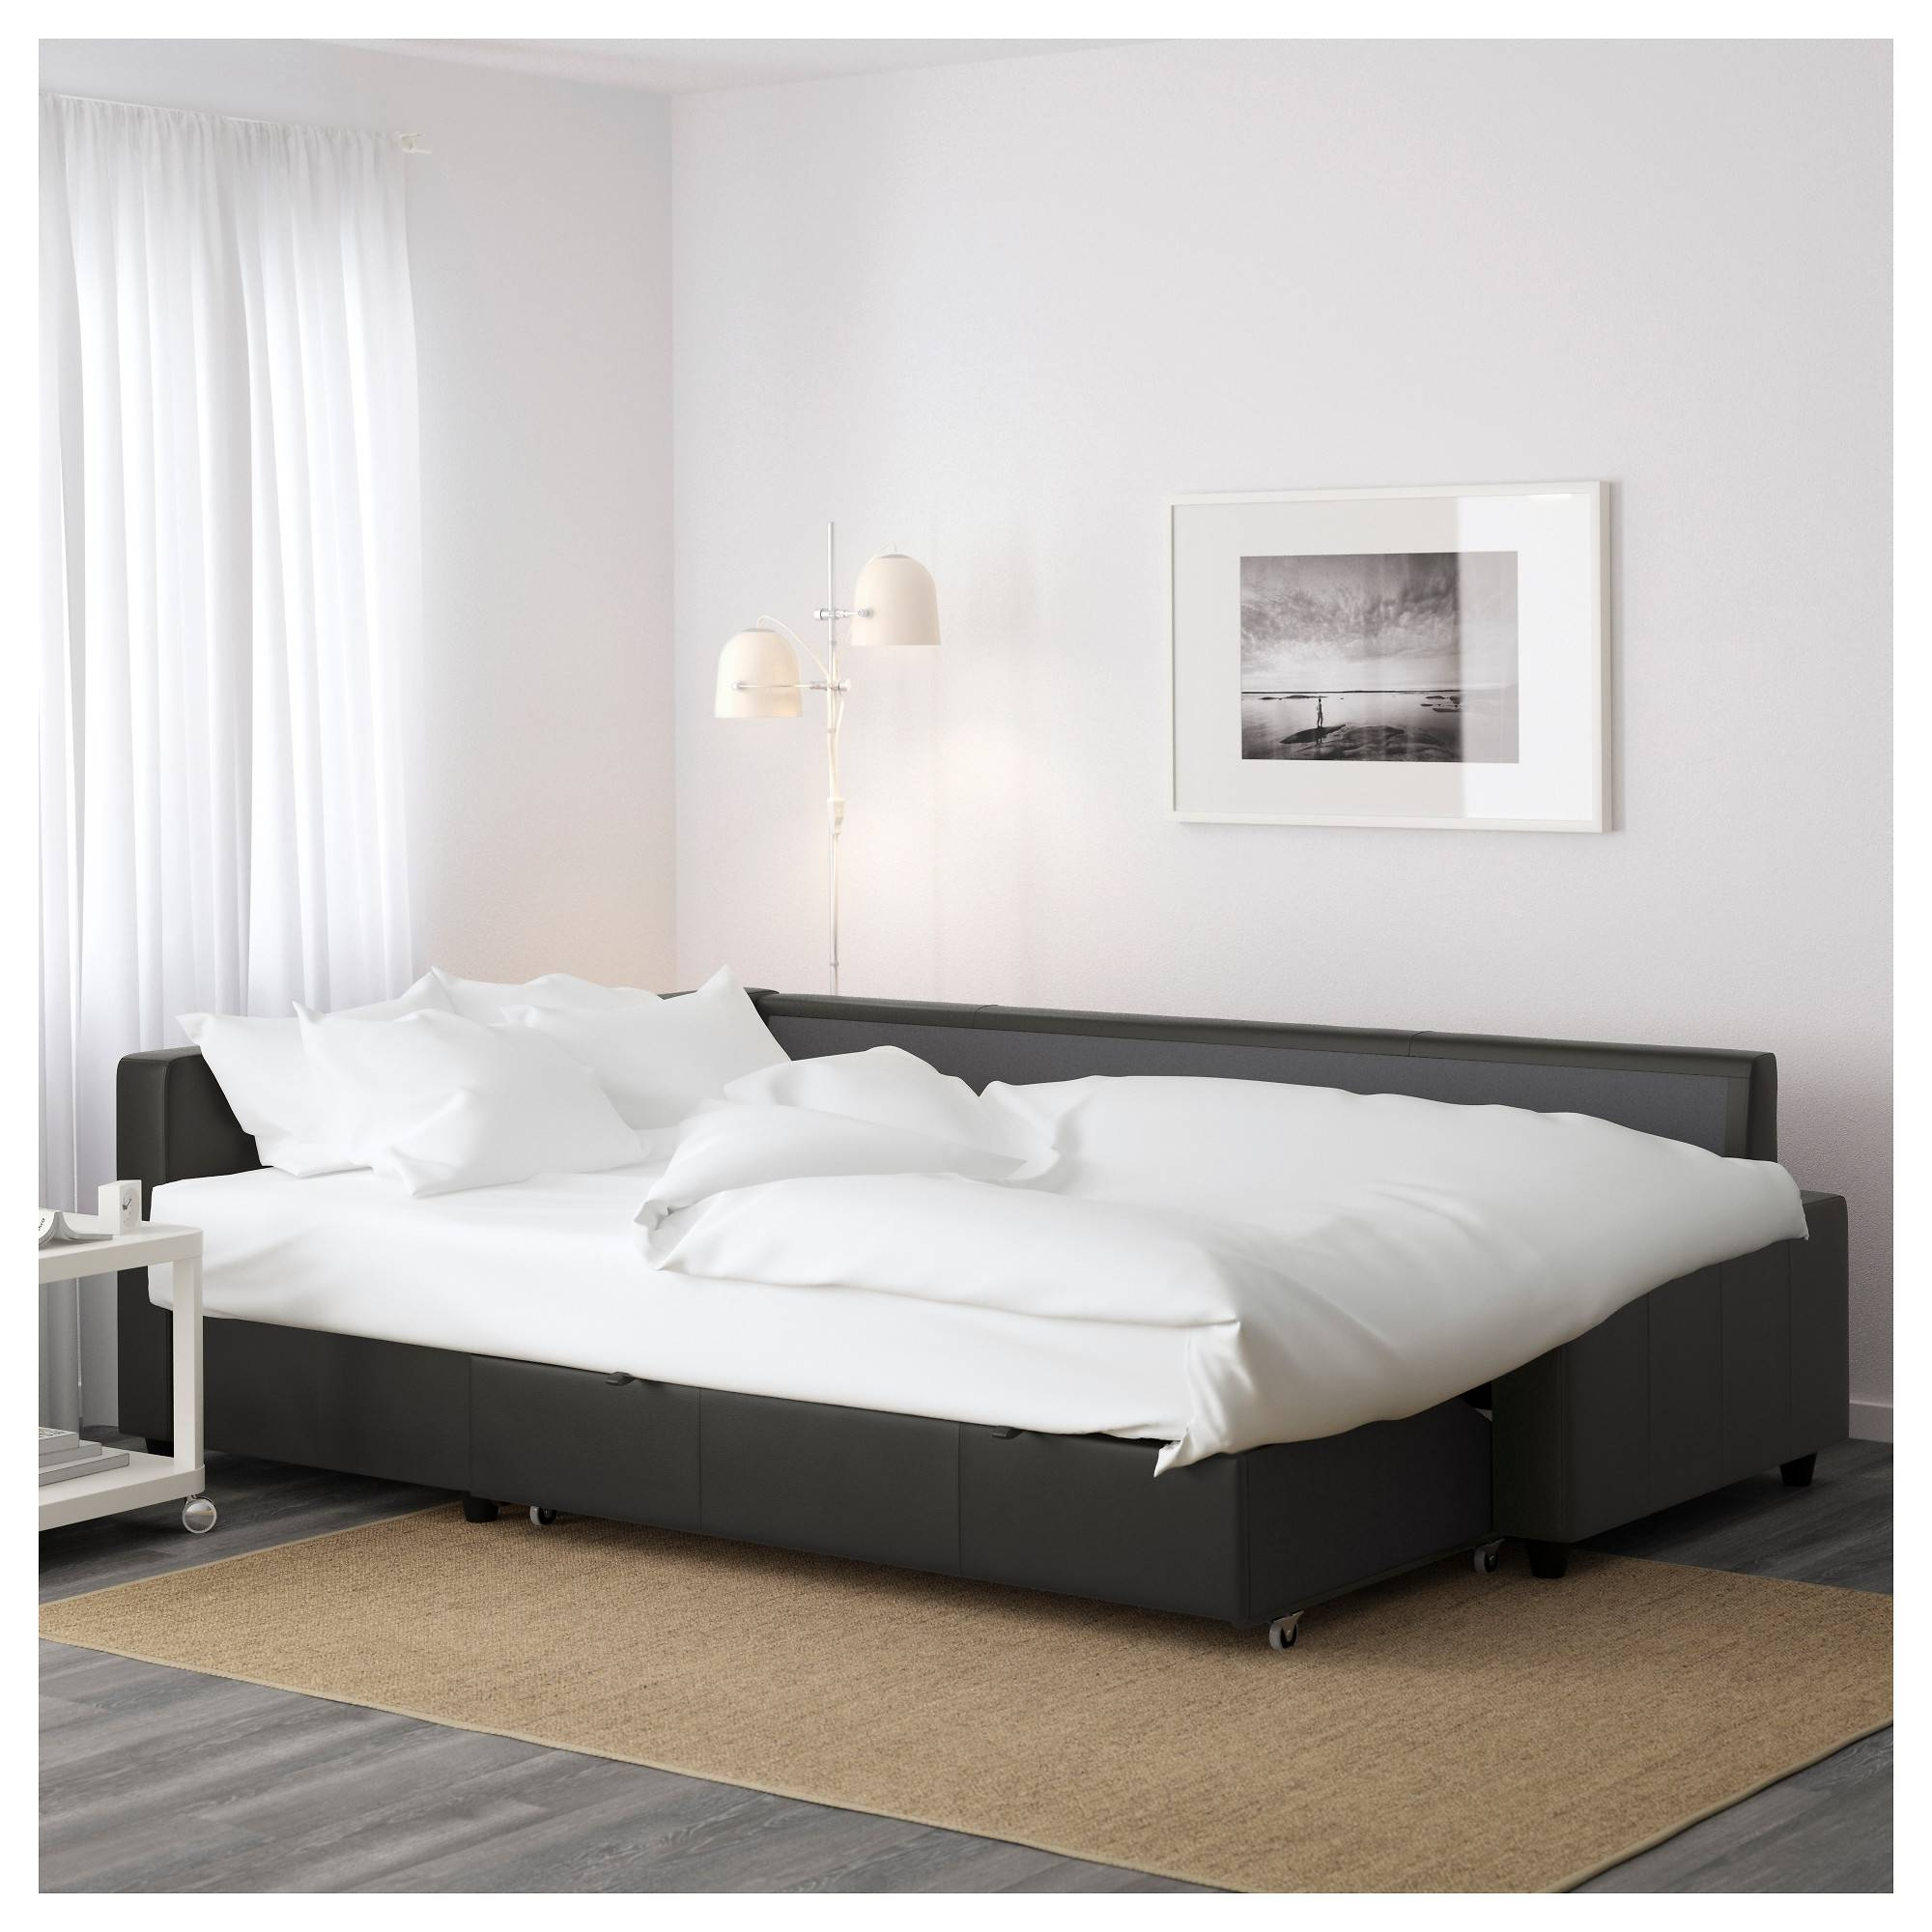 Friheten Sleeper Sectional,3 Seat W/storage - Skiftebo Dark Gray with regard to Ikea Storage Sofa Bed (Image 11 of 25)